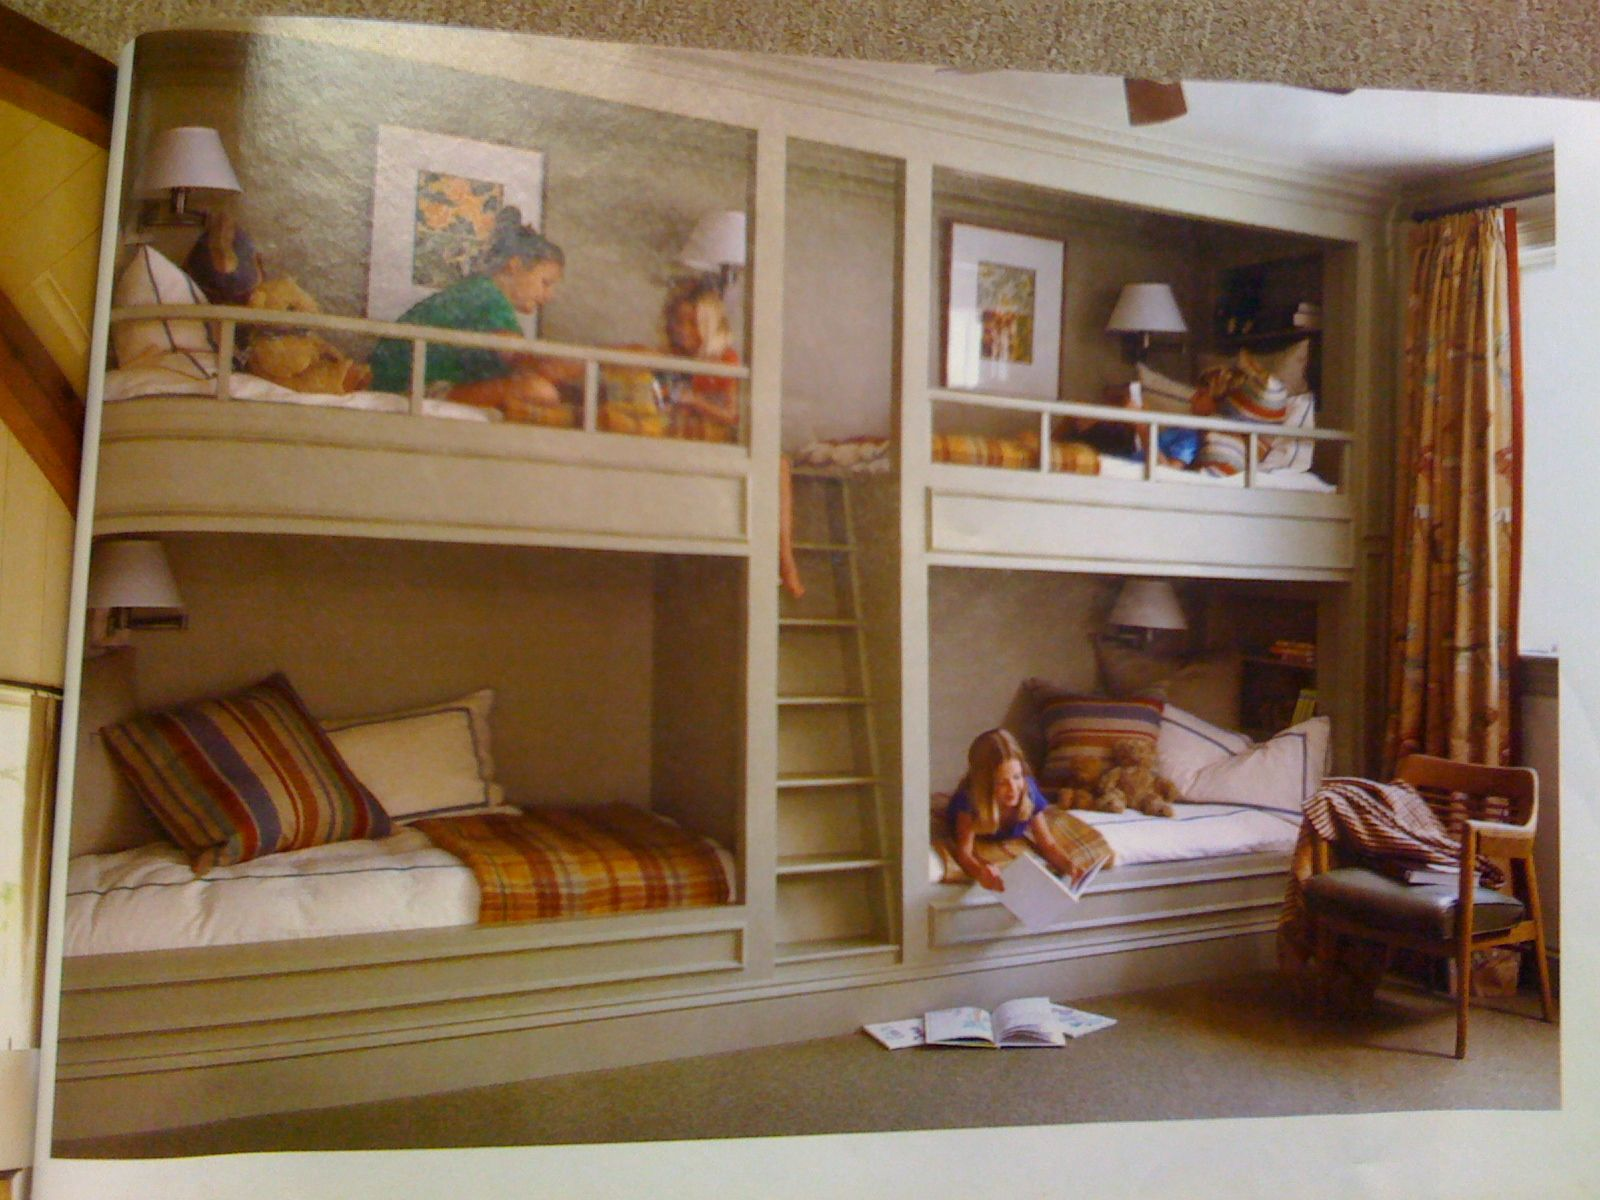 Bunk beds built into the wall design pinterest In wall bunk beds